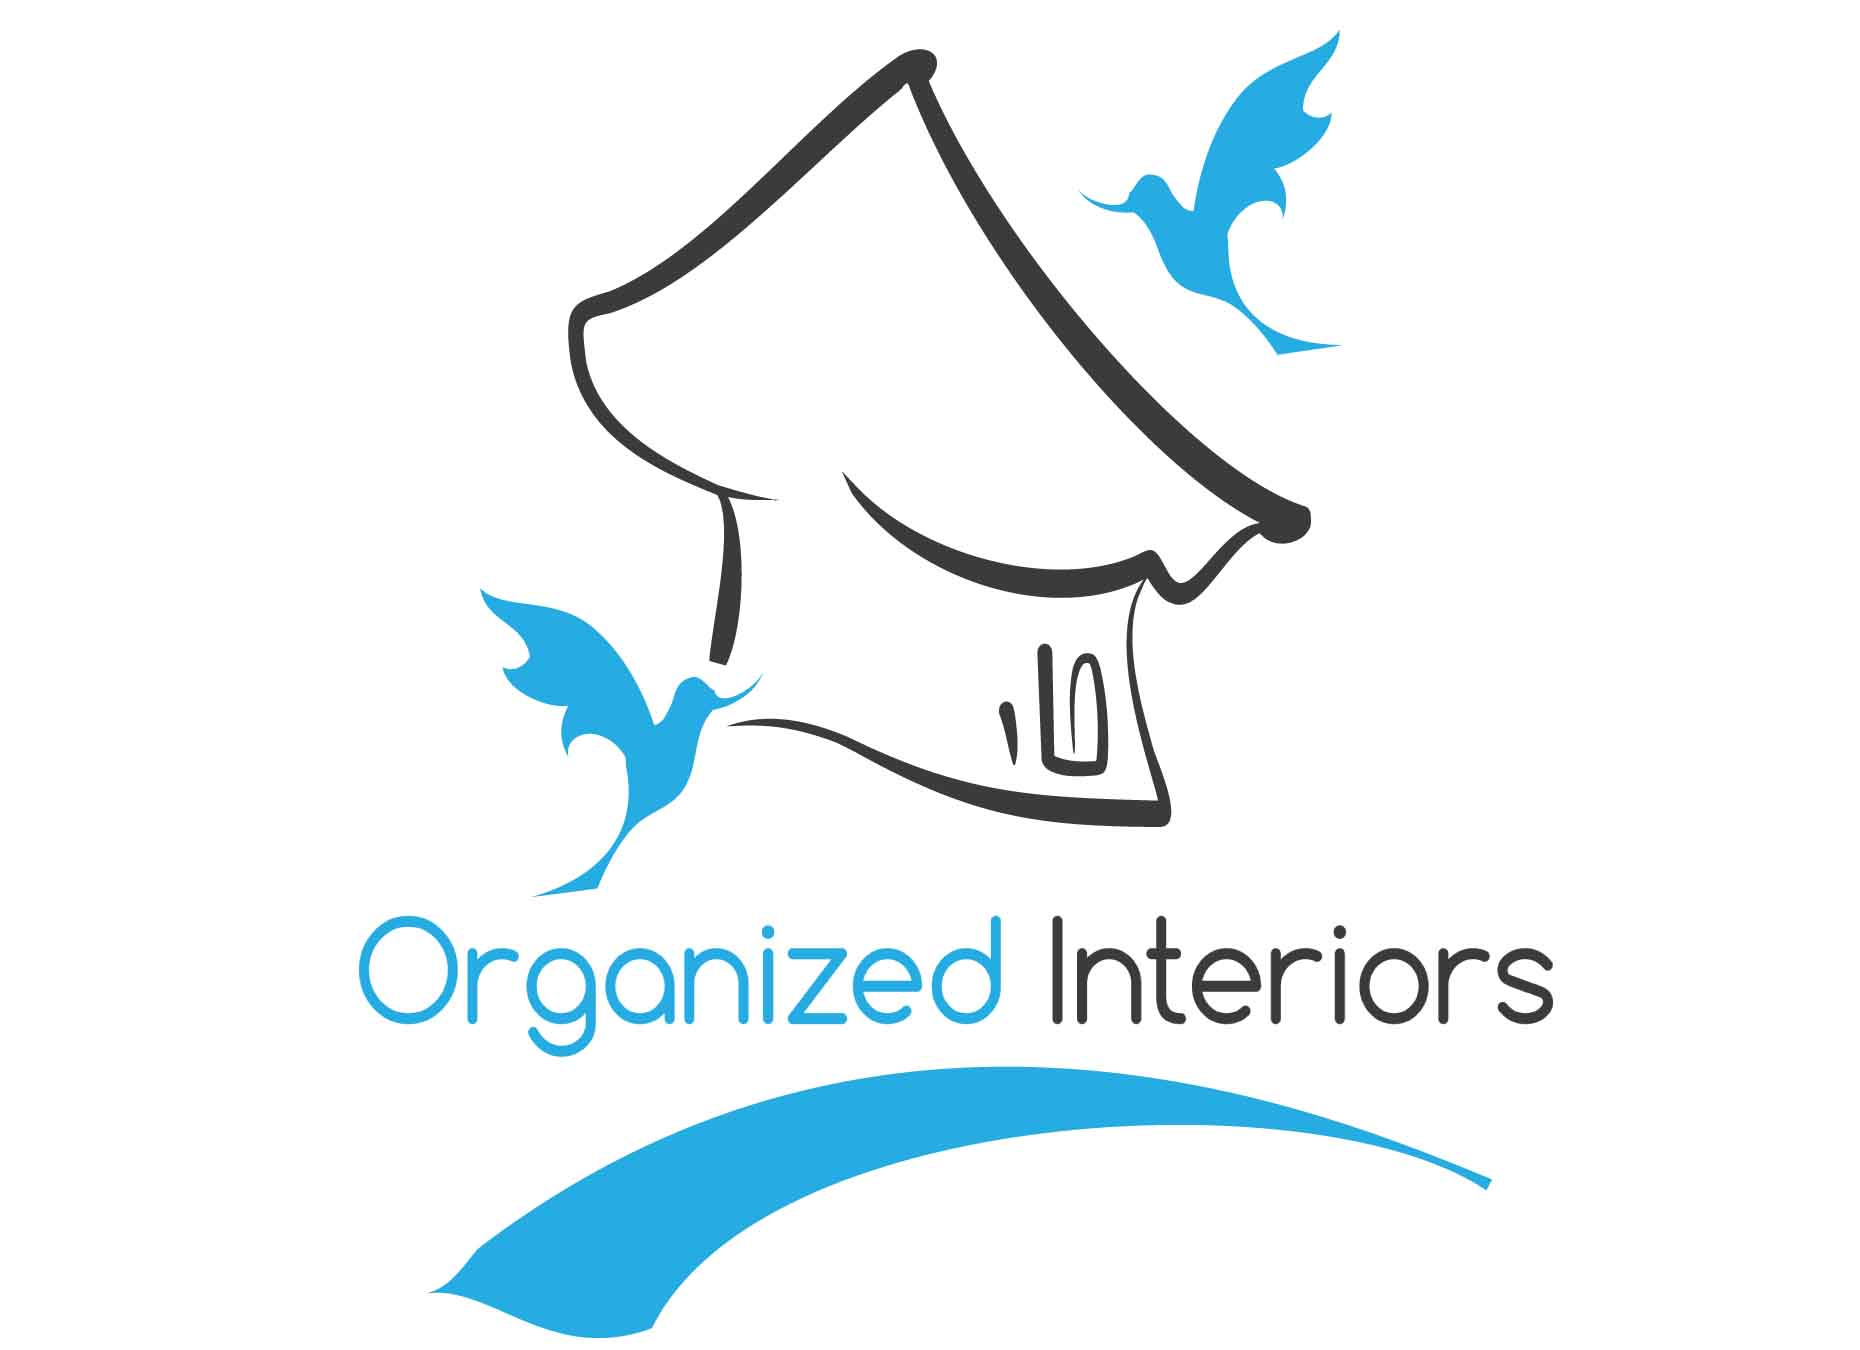 Logo Design by mediaproductionart - Entry No. 117 in the Logo Design Contest Imaginative Logo Design for Organized Interiors.